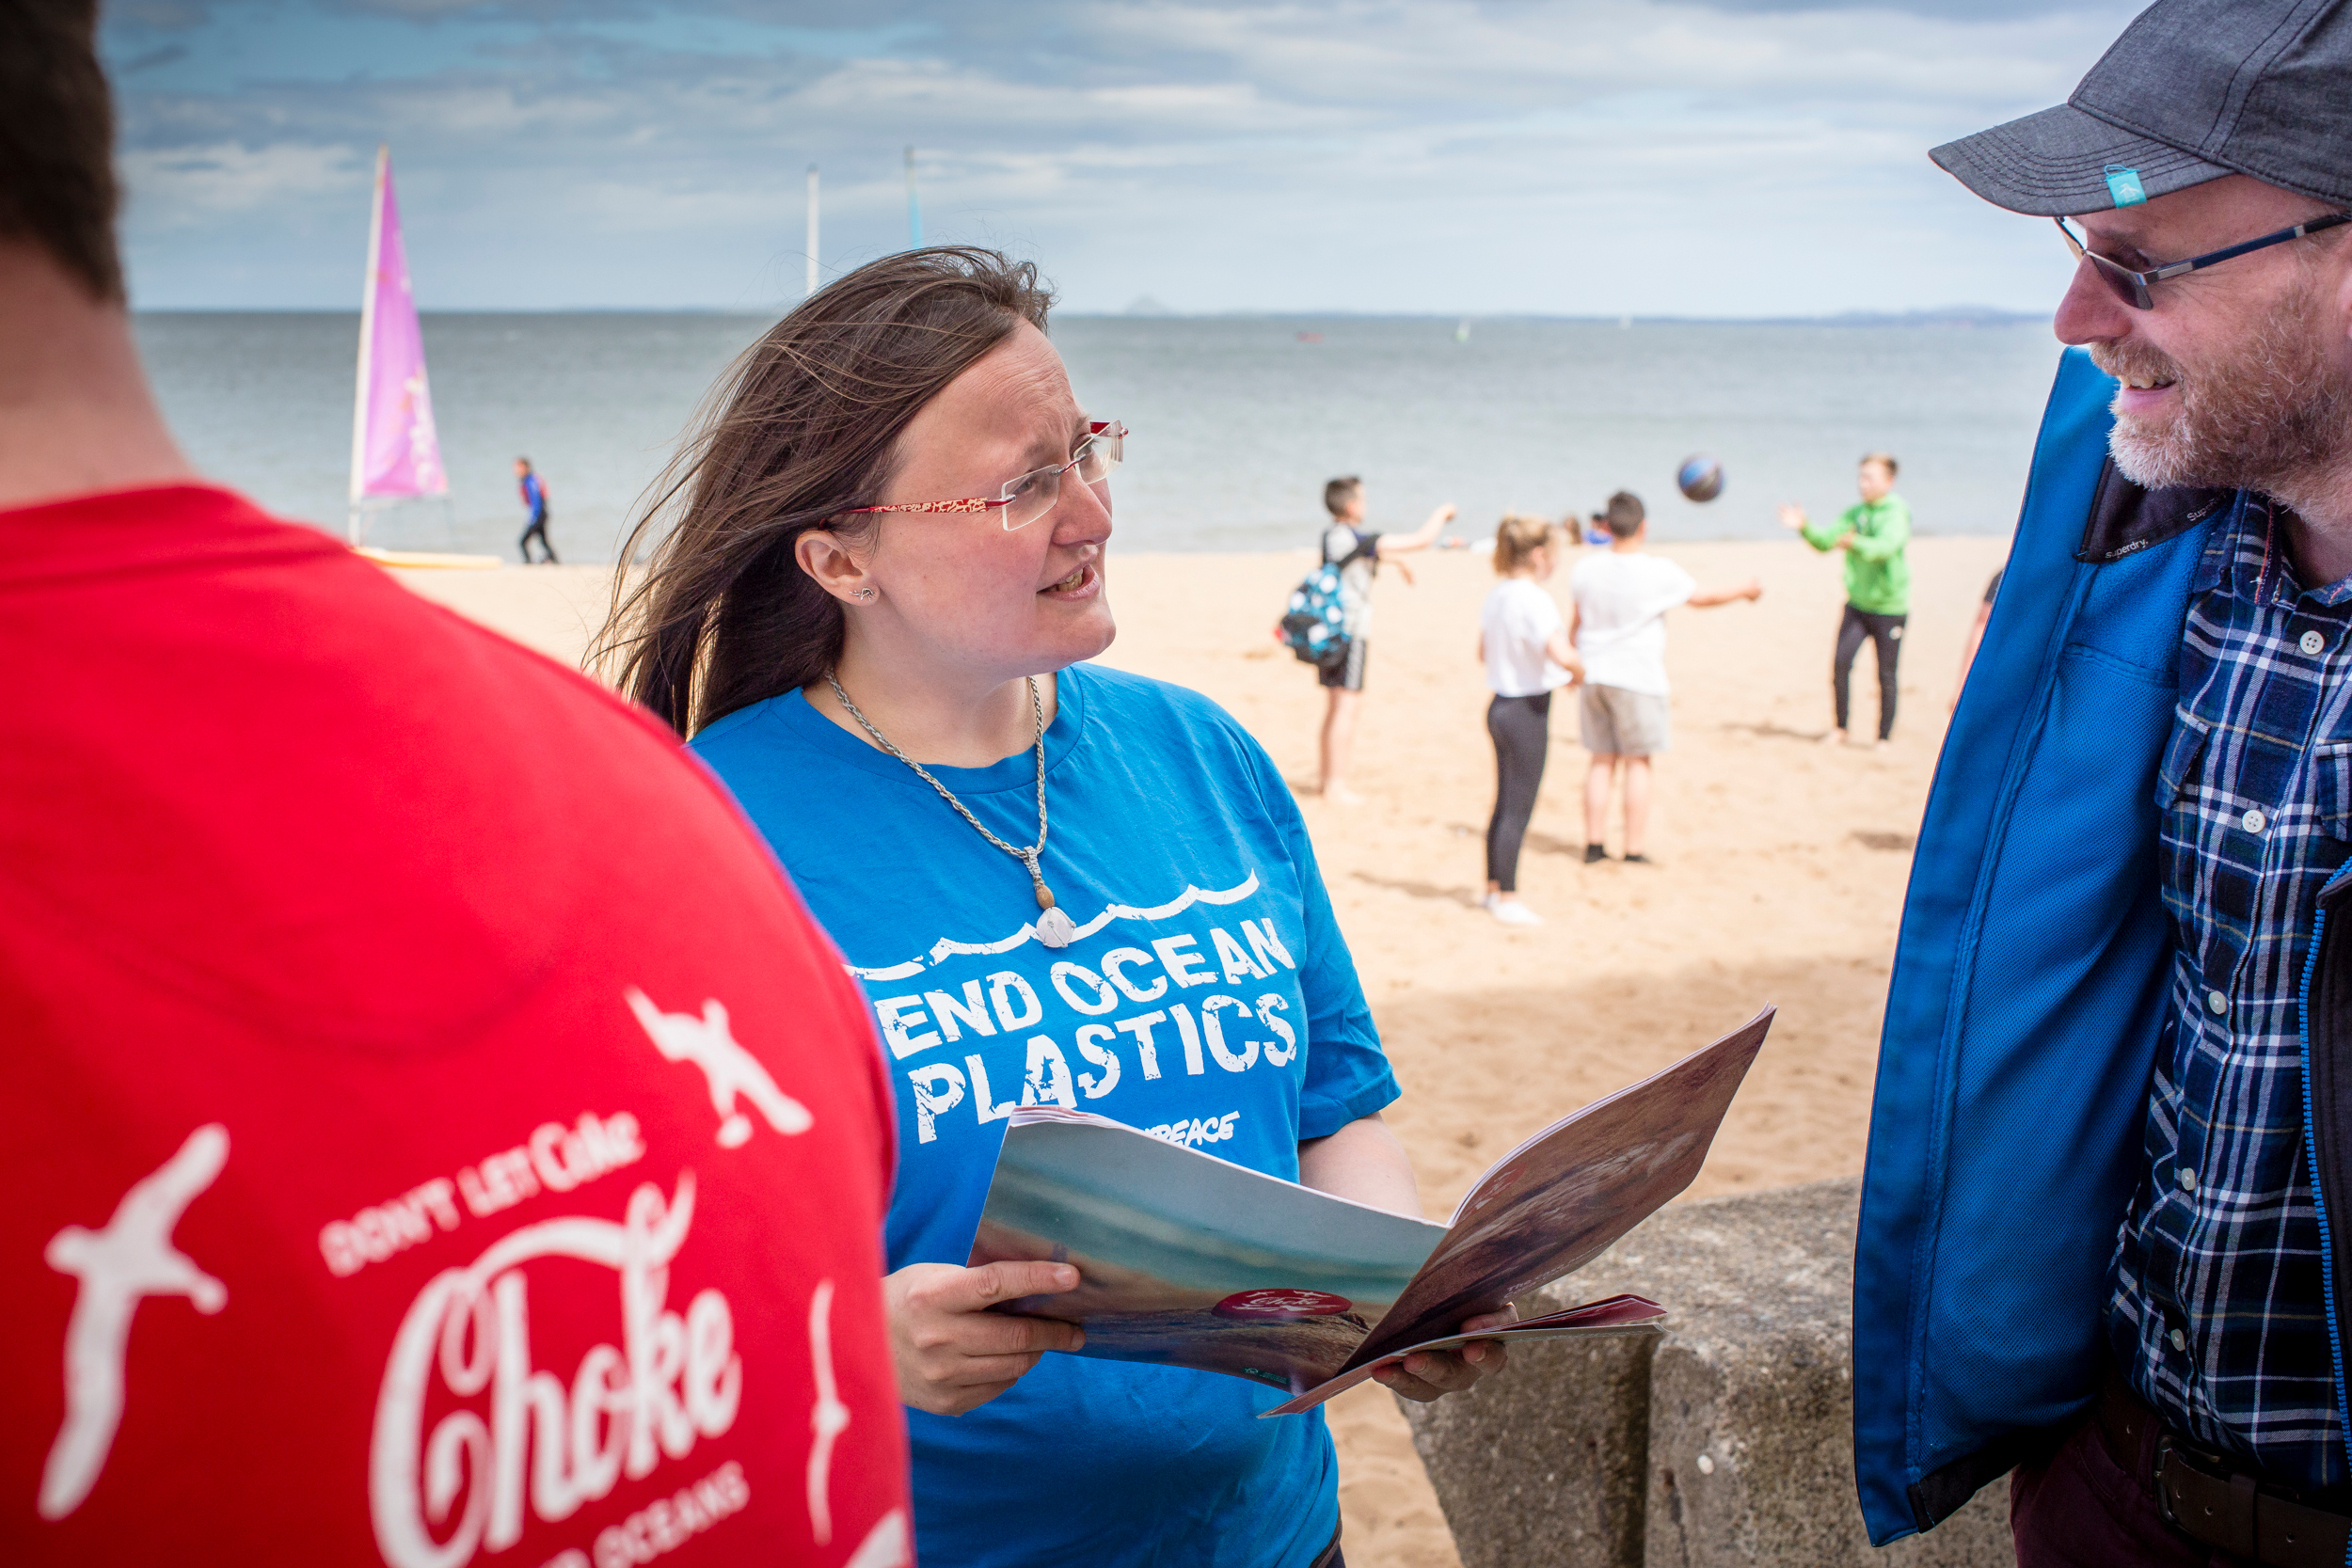 Greenpeace volunteers speak to members of the public